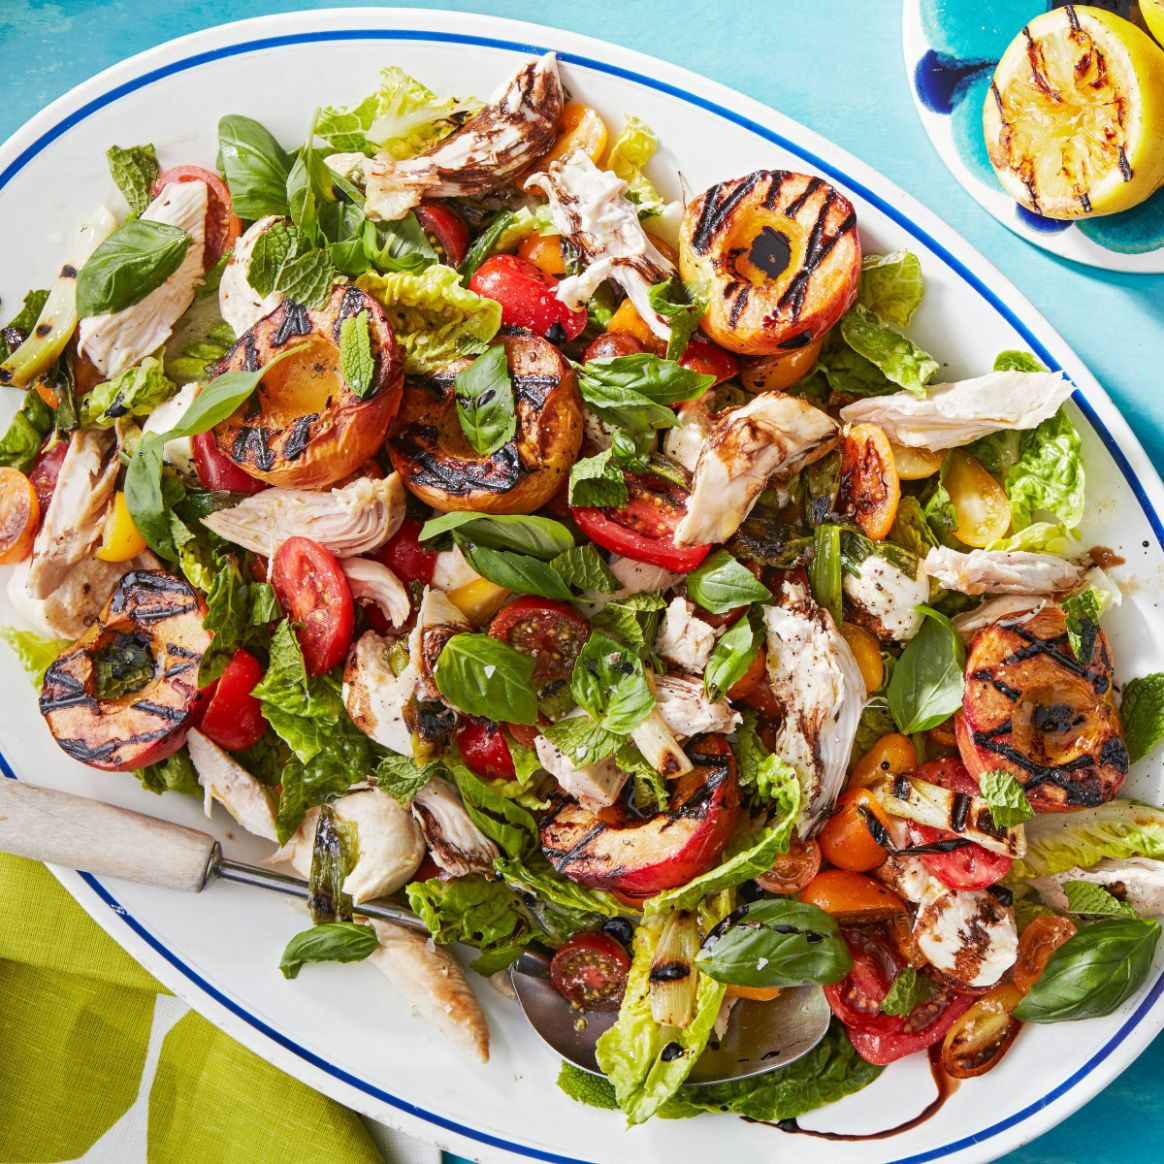 11 Summer Salad Recipes - Rachael Ray In Season - Summer Recipes Using Rotisserie Chicken